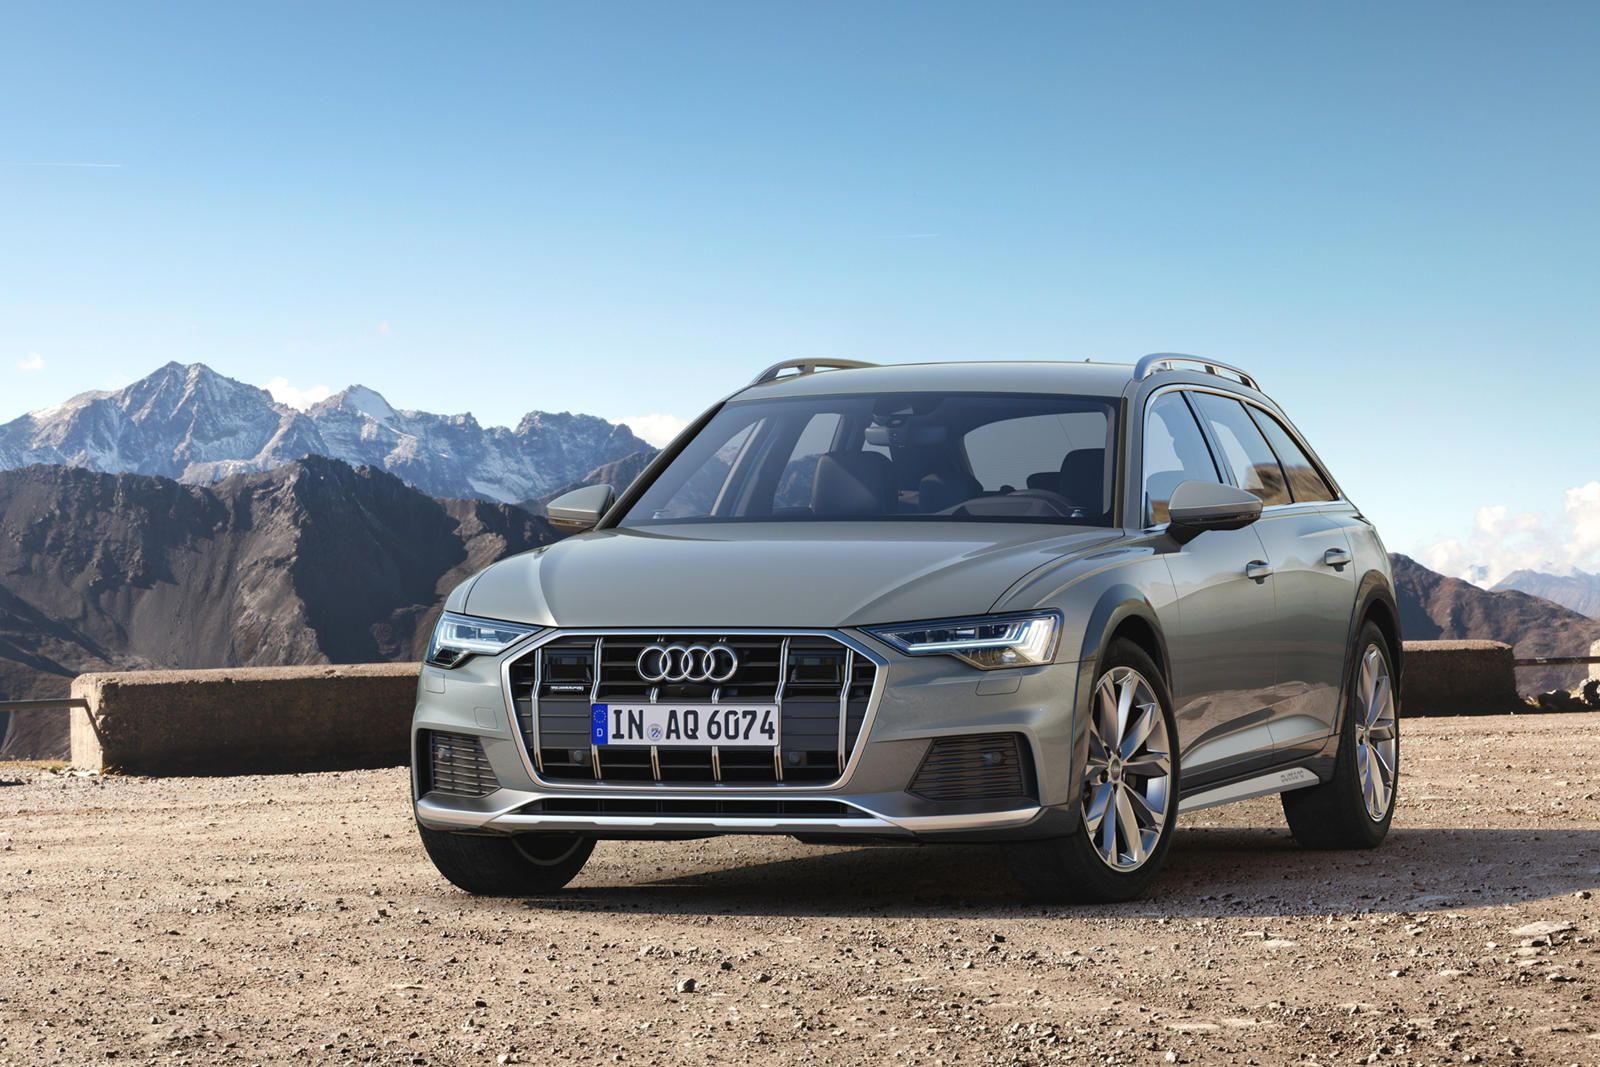 2020 Audi A6 Allroad First Look Review Sweet Wagon Revenge Bmw Are You Paying Attention Audi A6 Allroad Audi A6 Audi Allroad